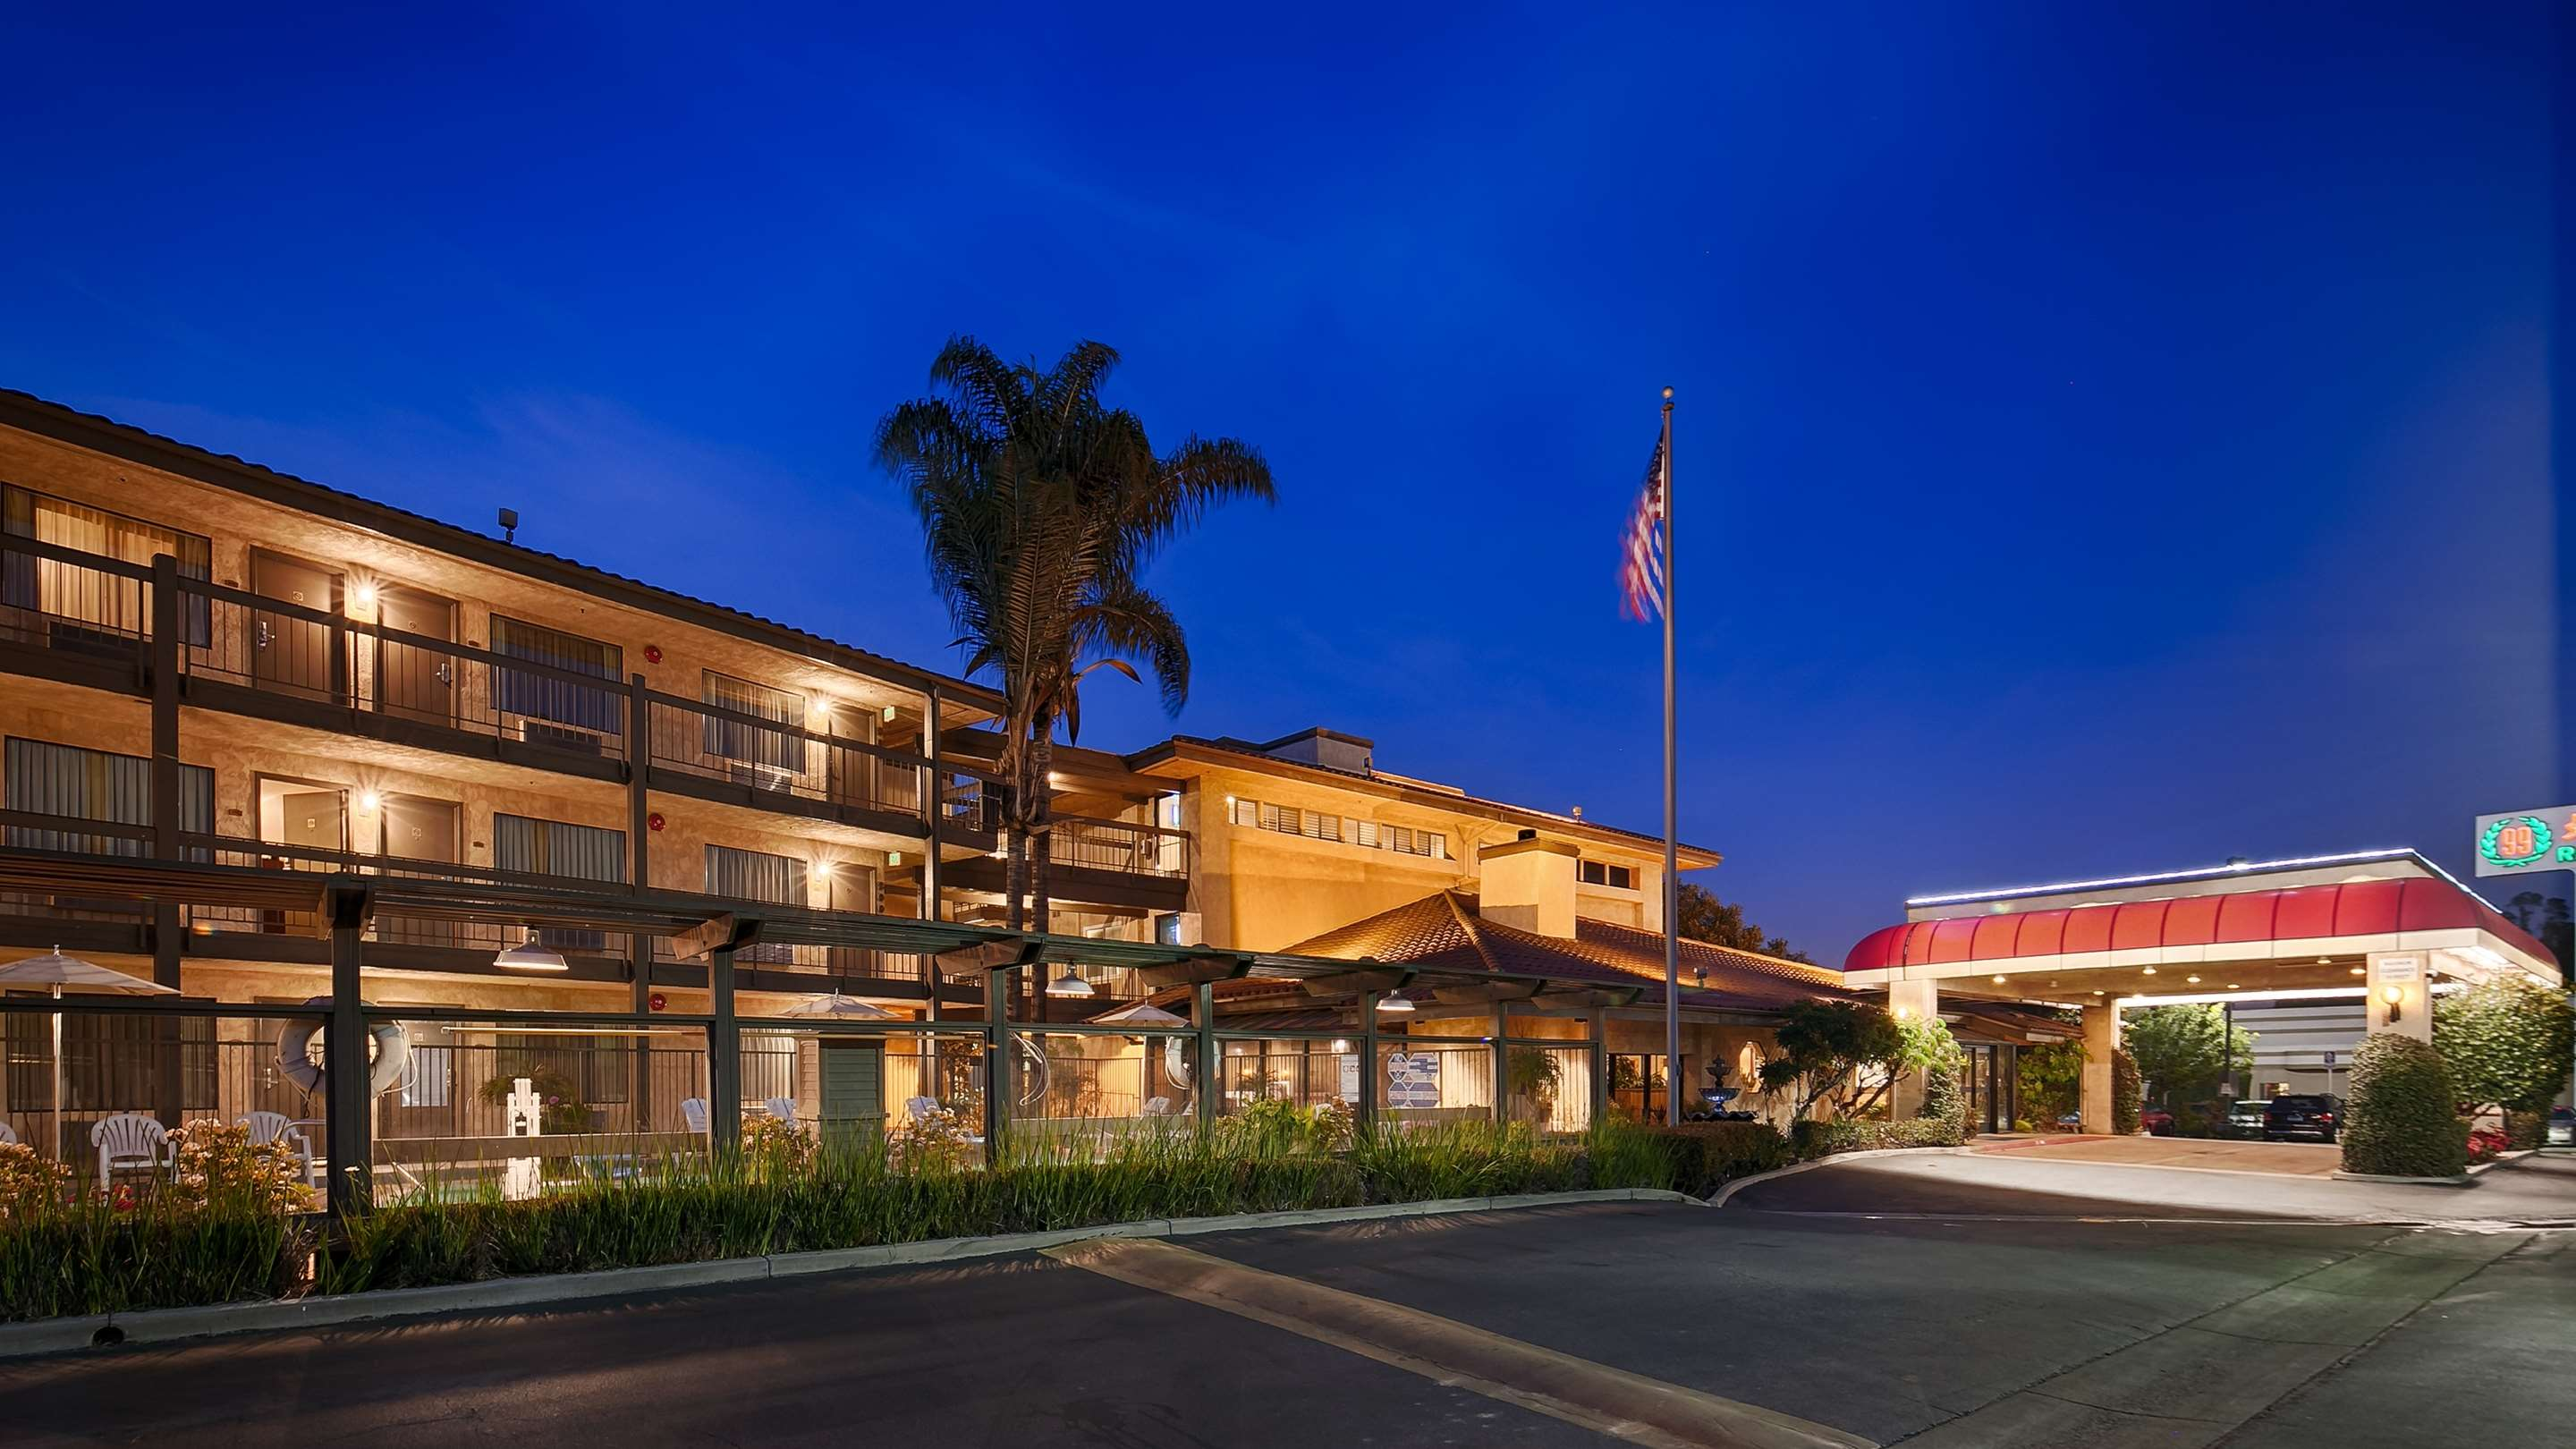 best western plus executive inn rowland heights ca On best western plus executive inn